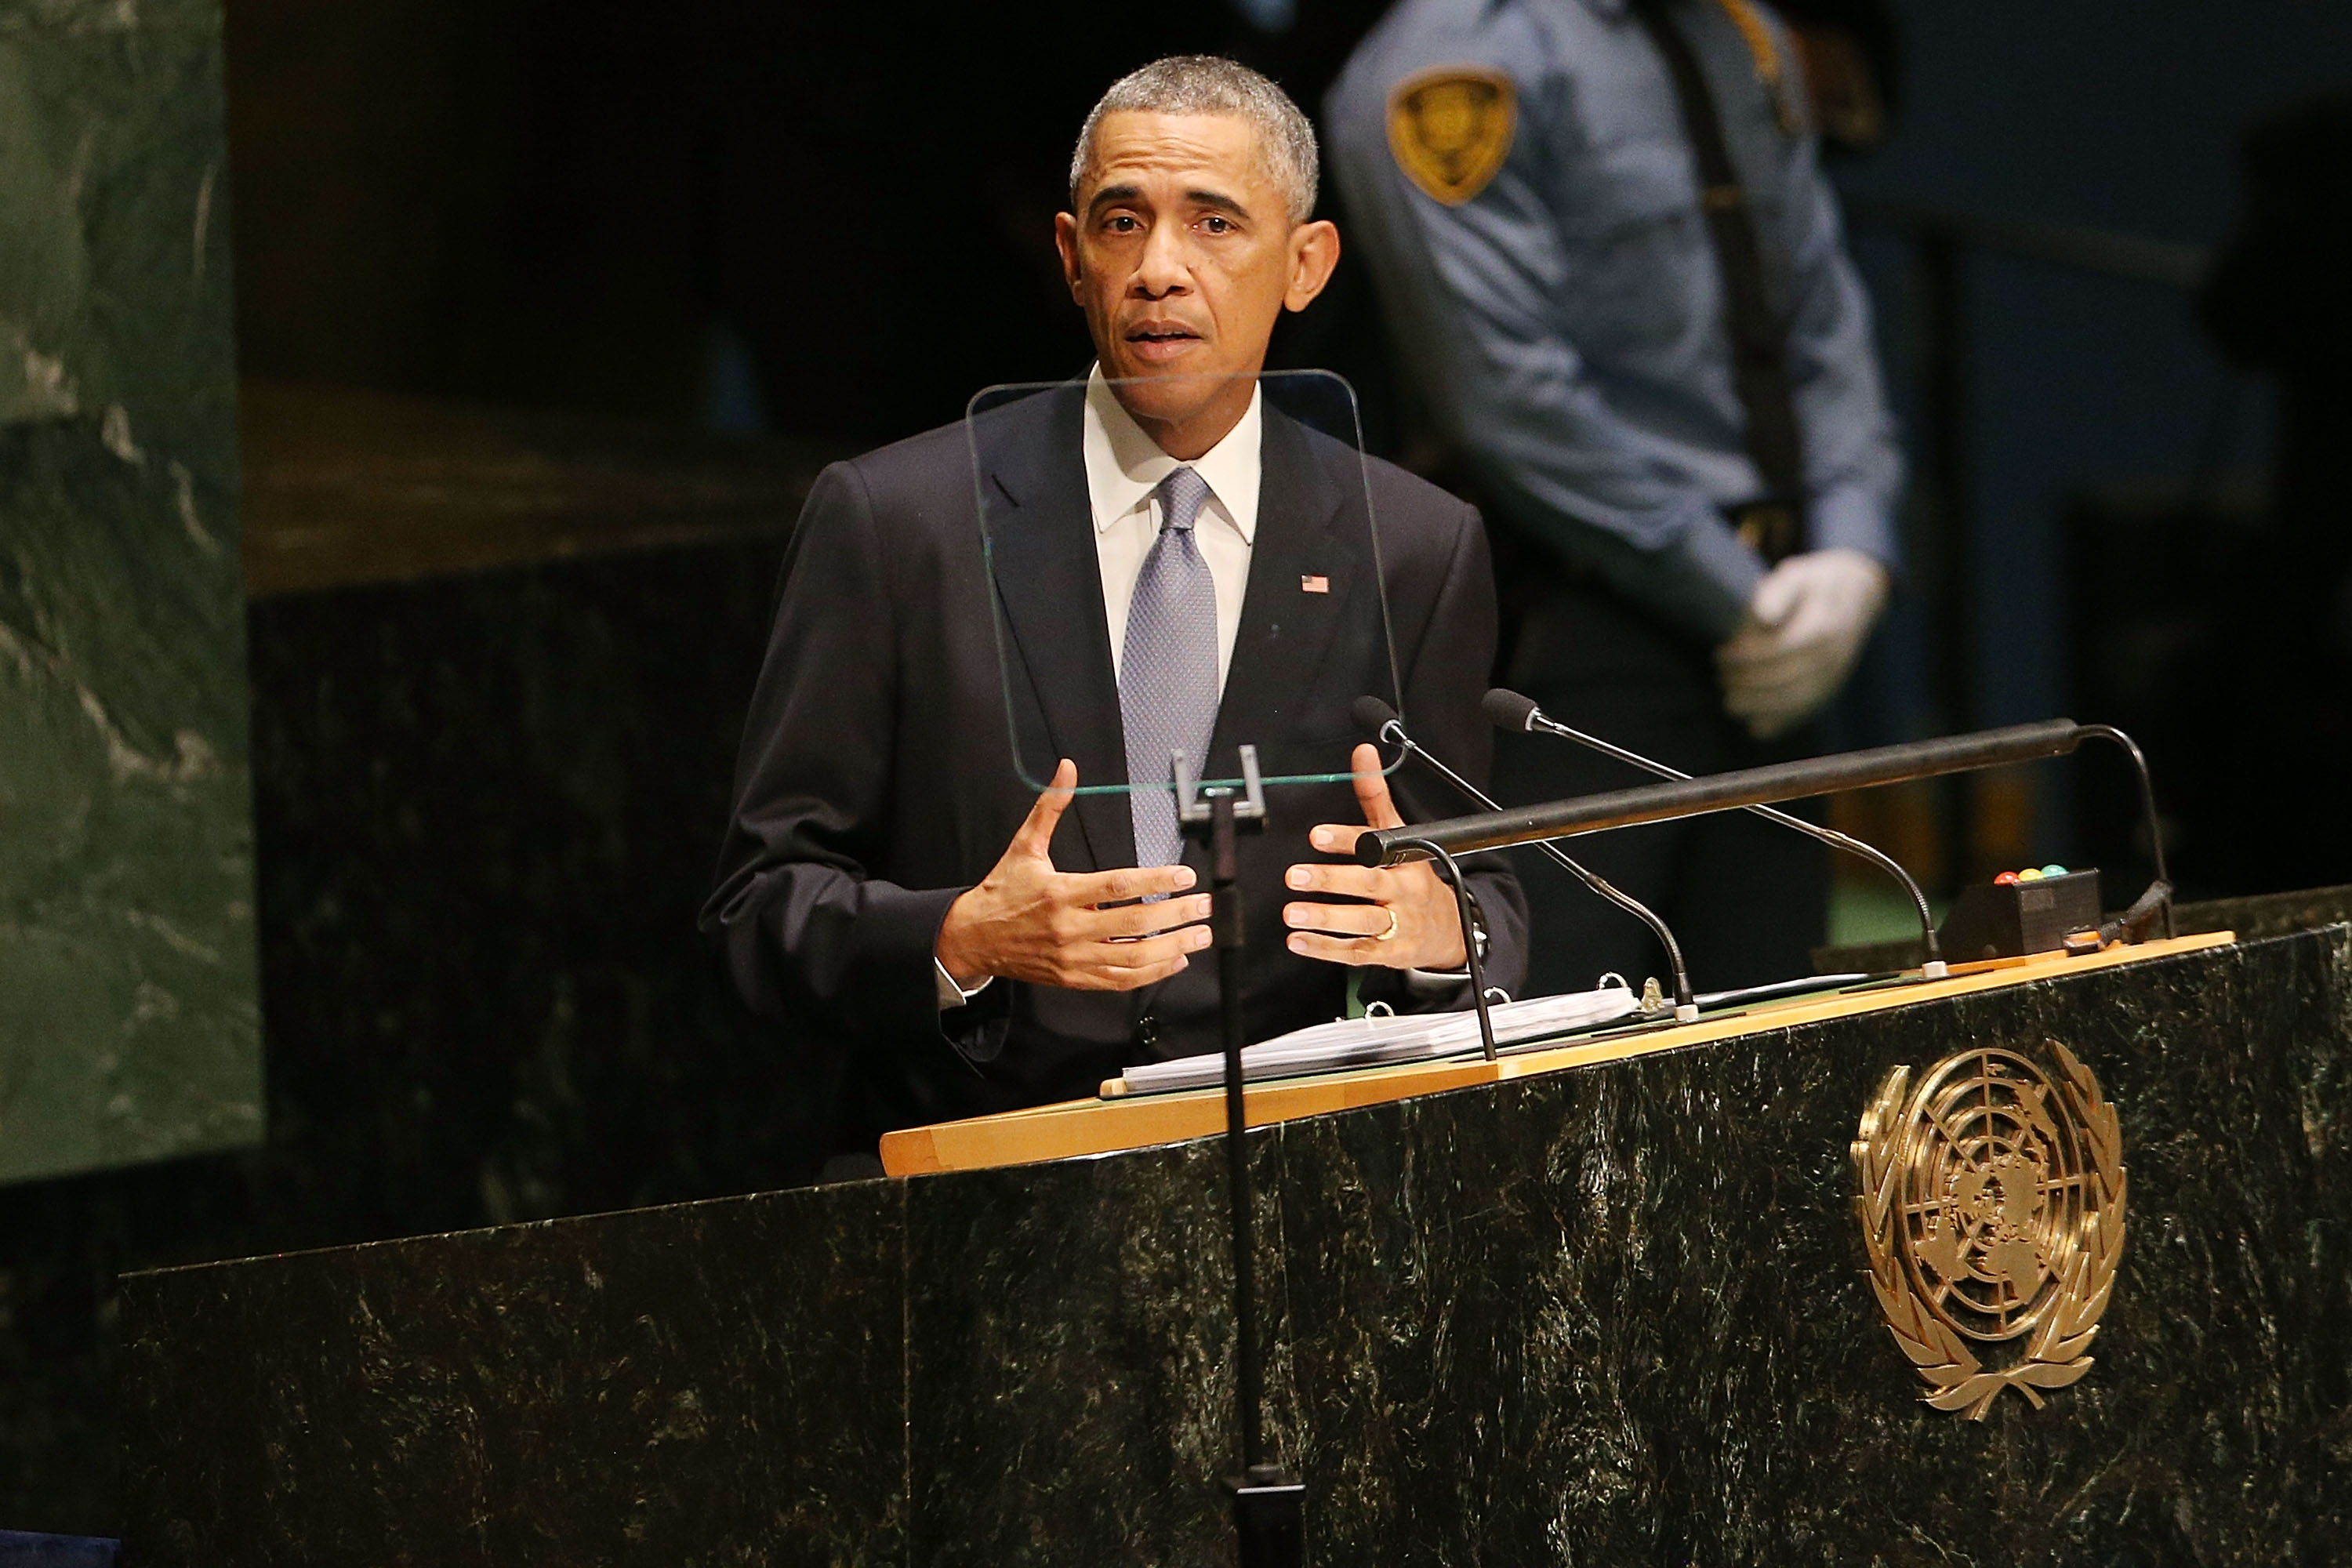 President Obama speaks at the 69th Session of the United Nations General Assembly at United Nations Headquarters, Sept. 24, 2014 in New York City. (Spencer Platt/Getty Images)